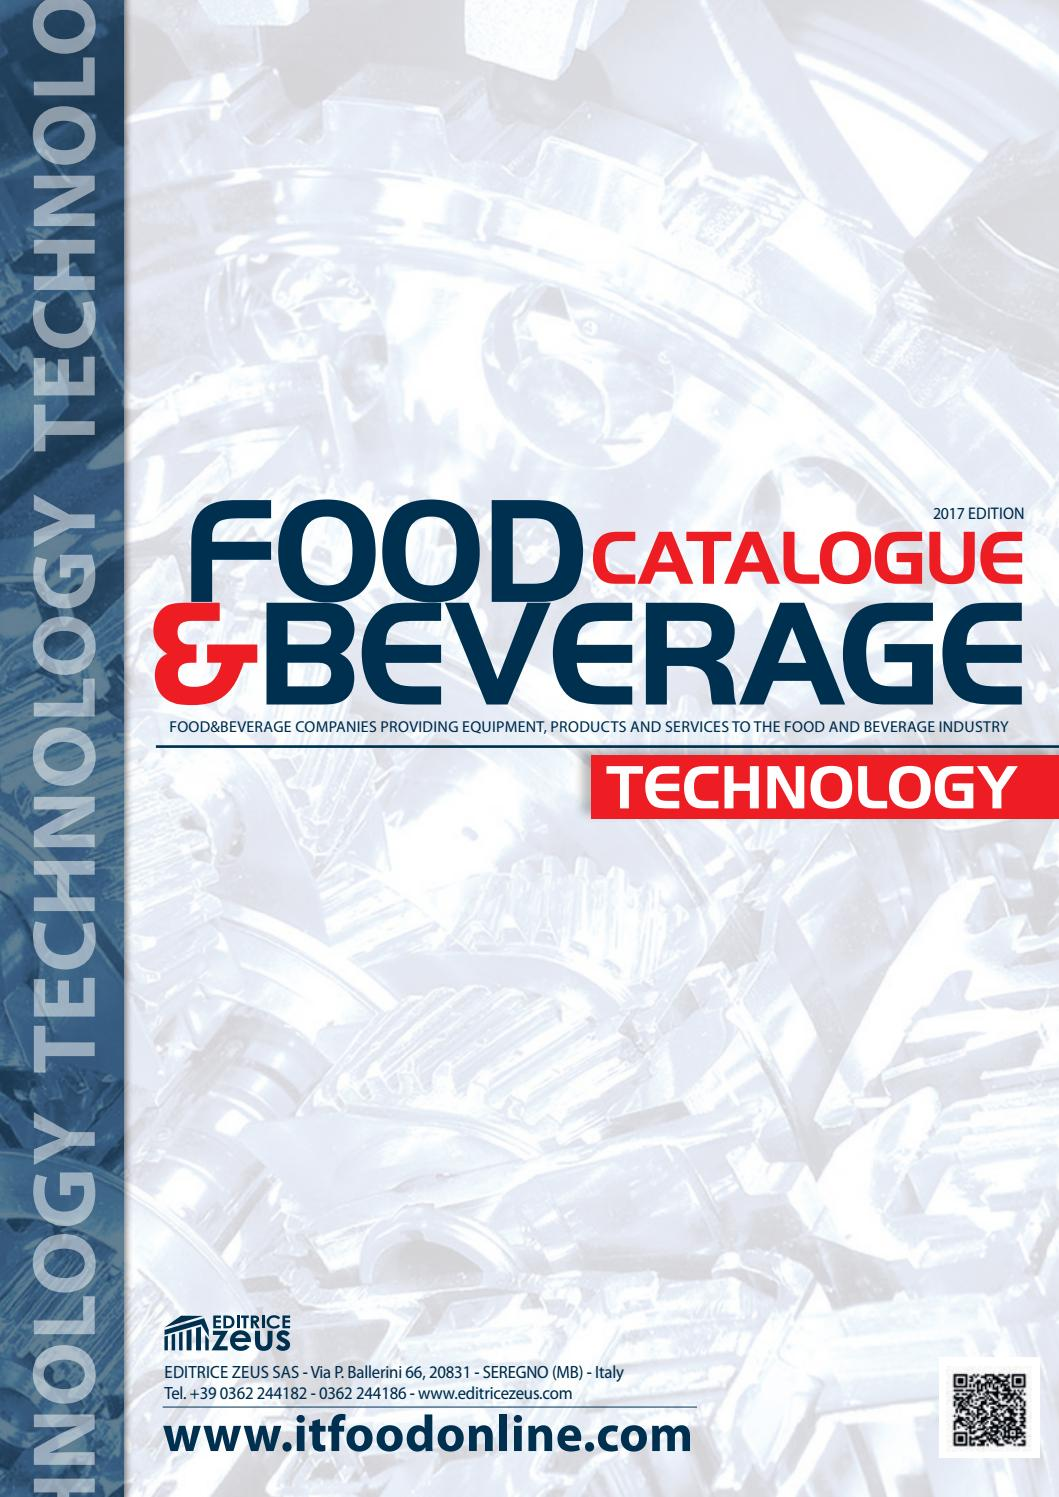 Miscela Per Pulire Il Forno food & beverage technology catalogue 2017 edition by